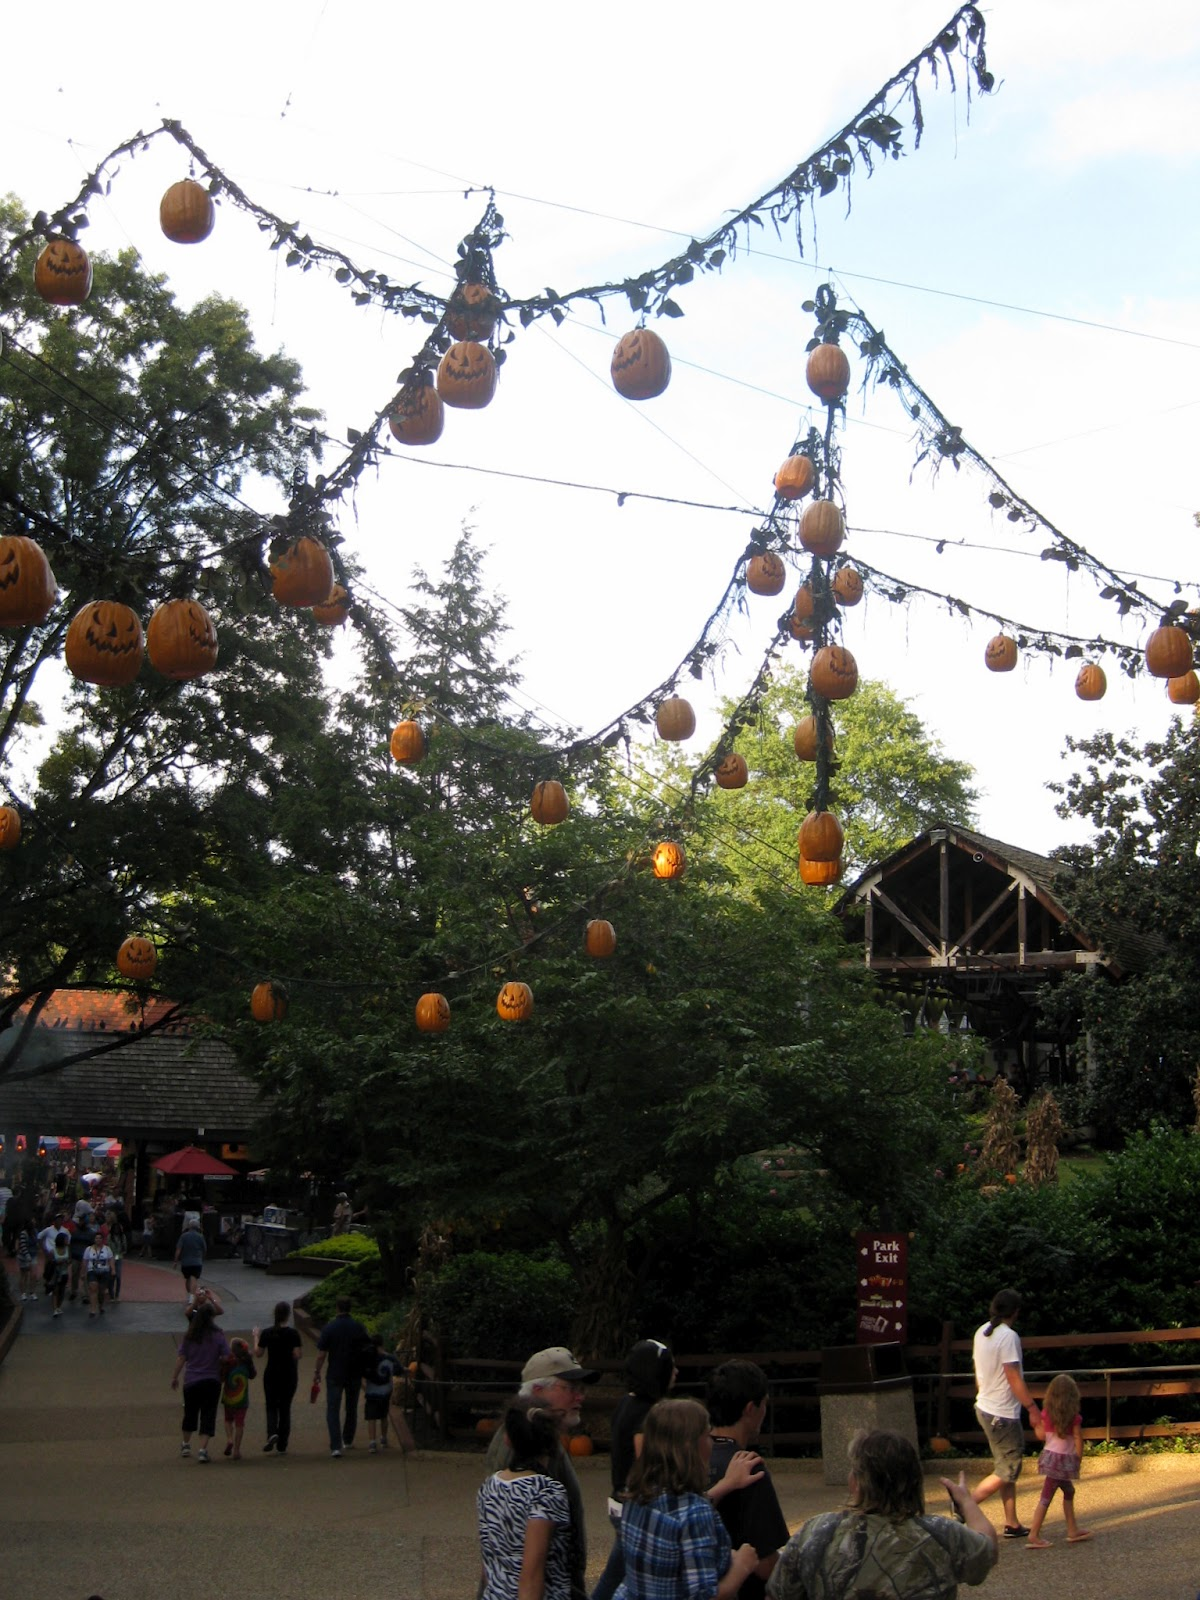 Cassie stephens weekend adventure wicked in williamsburg - Busch gardens williamsburg halloween ...